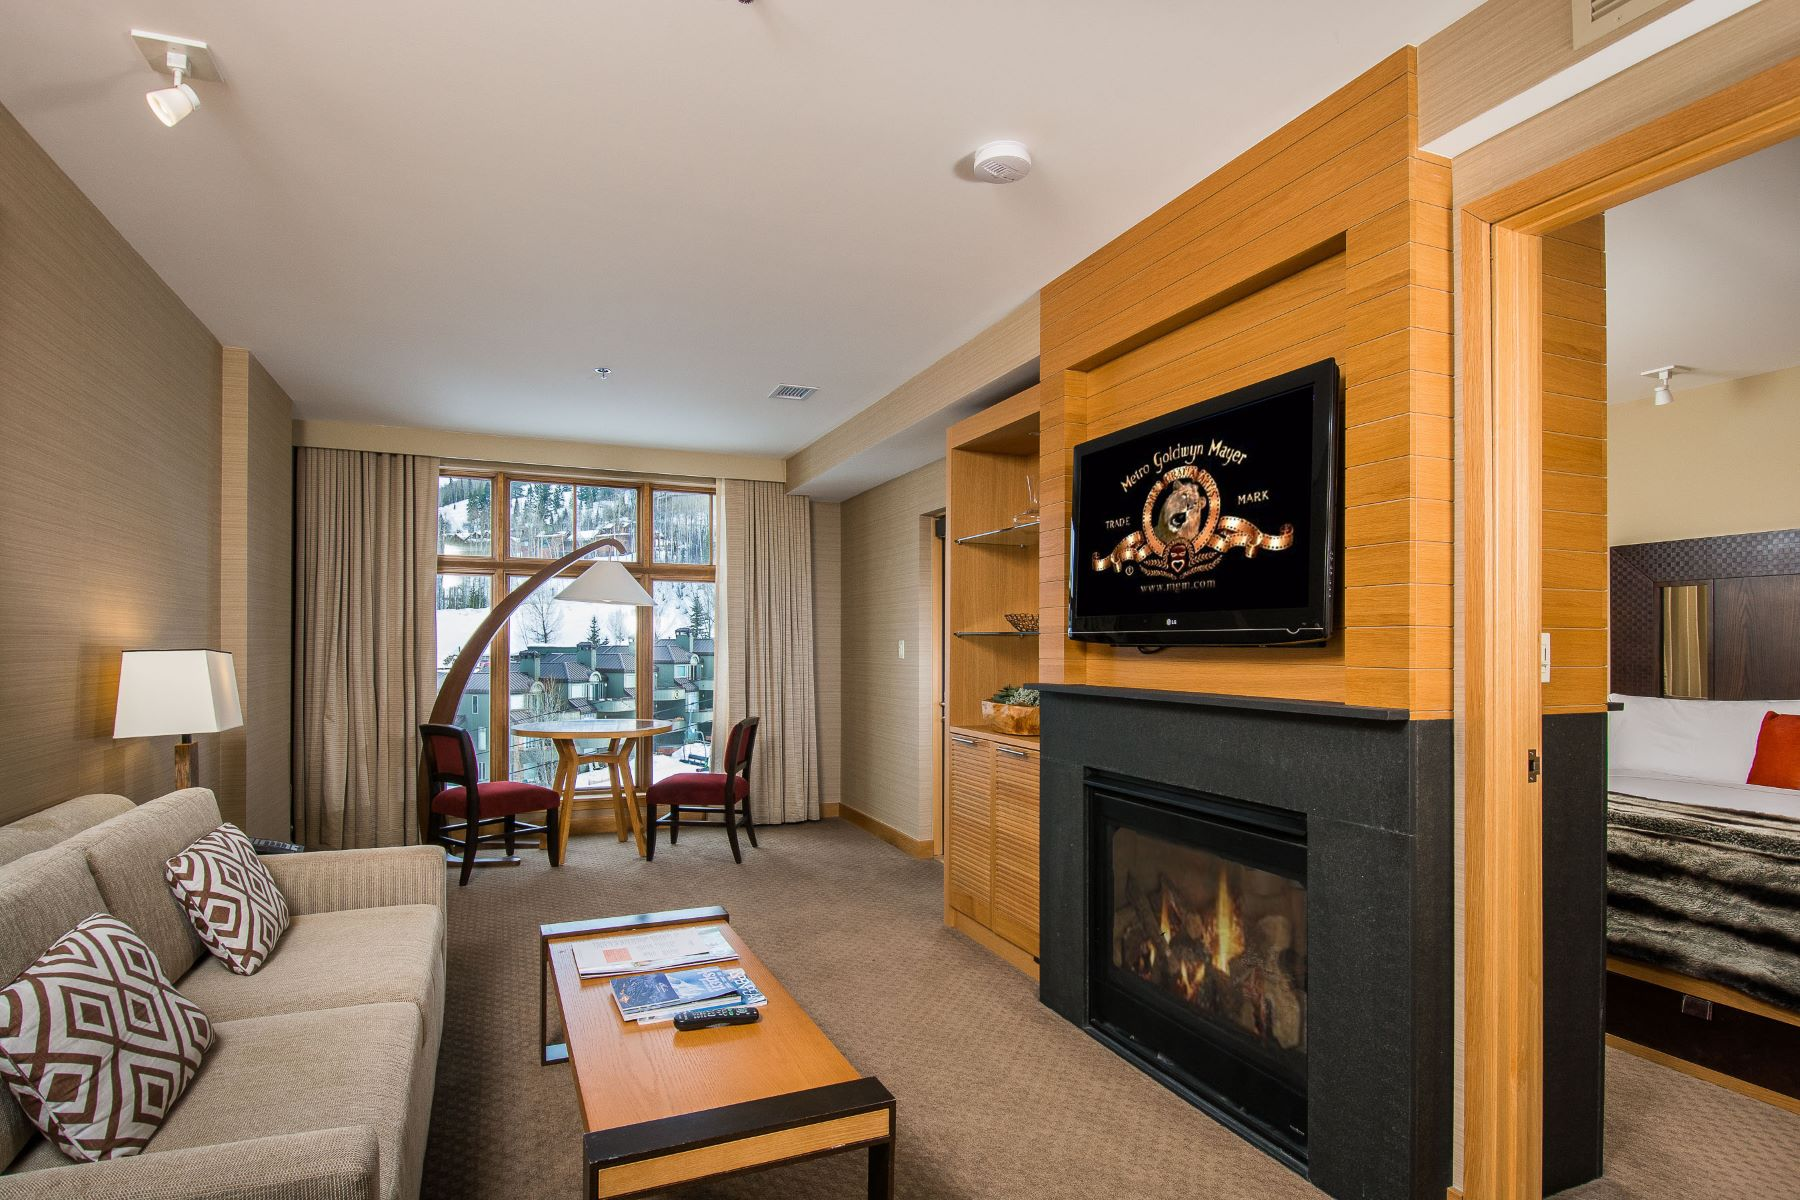 Condominium for Sale at Assay Hill Lodge 130 Wood Road, unit 538 Snowmass Village, Colorado, 81615 United States